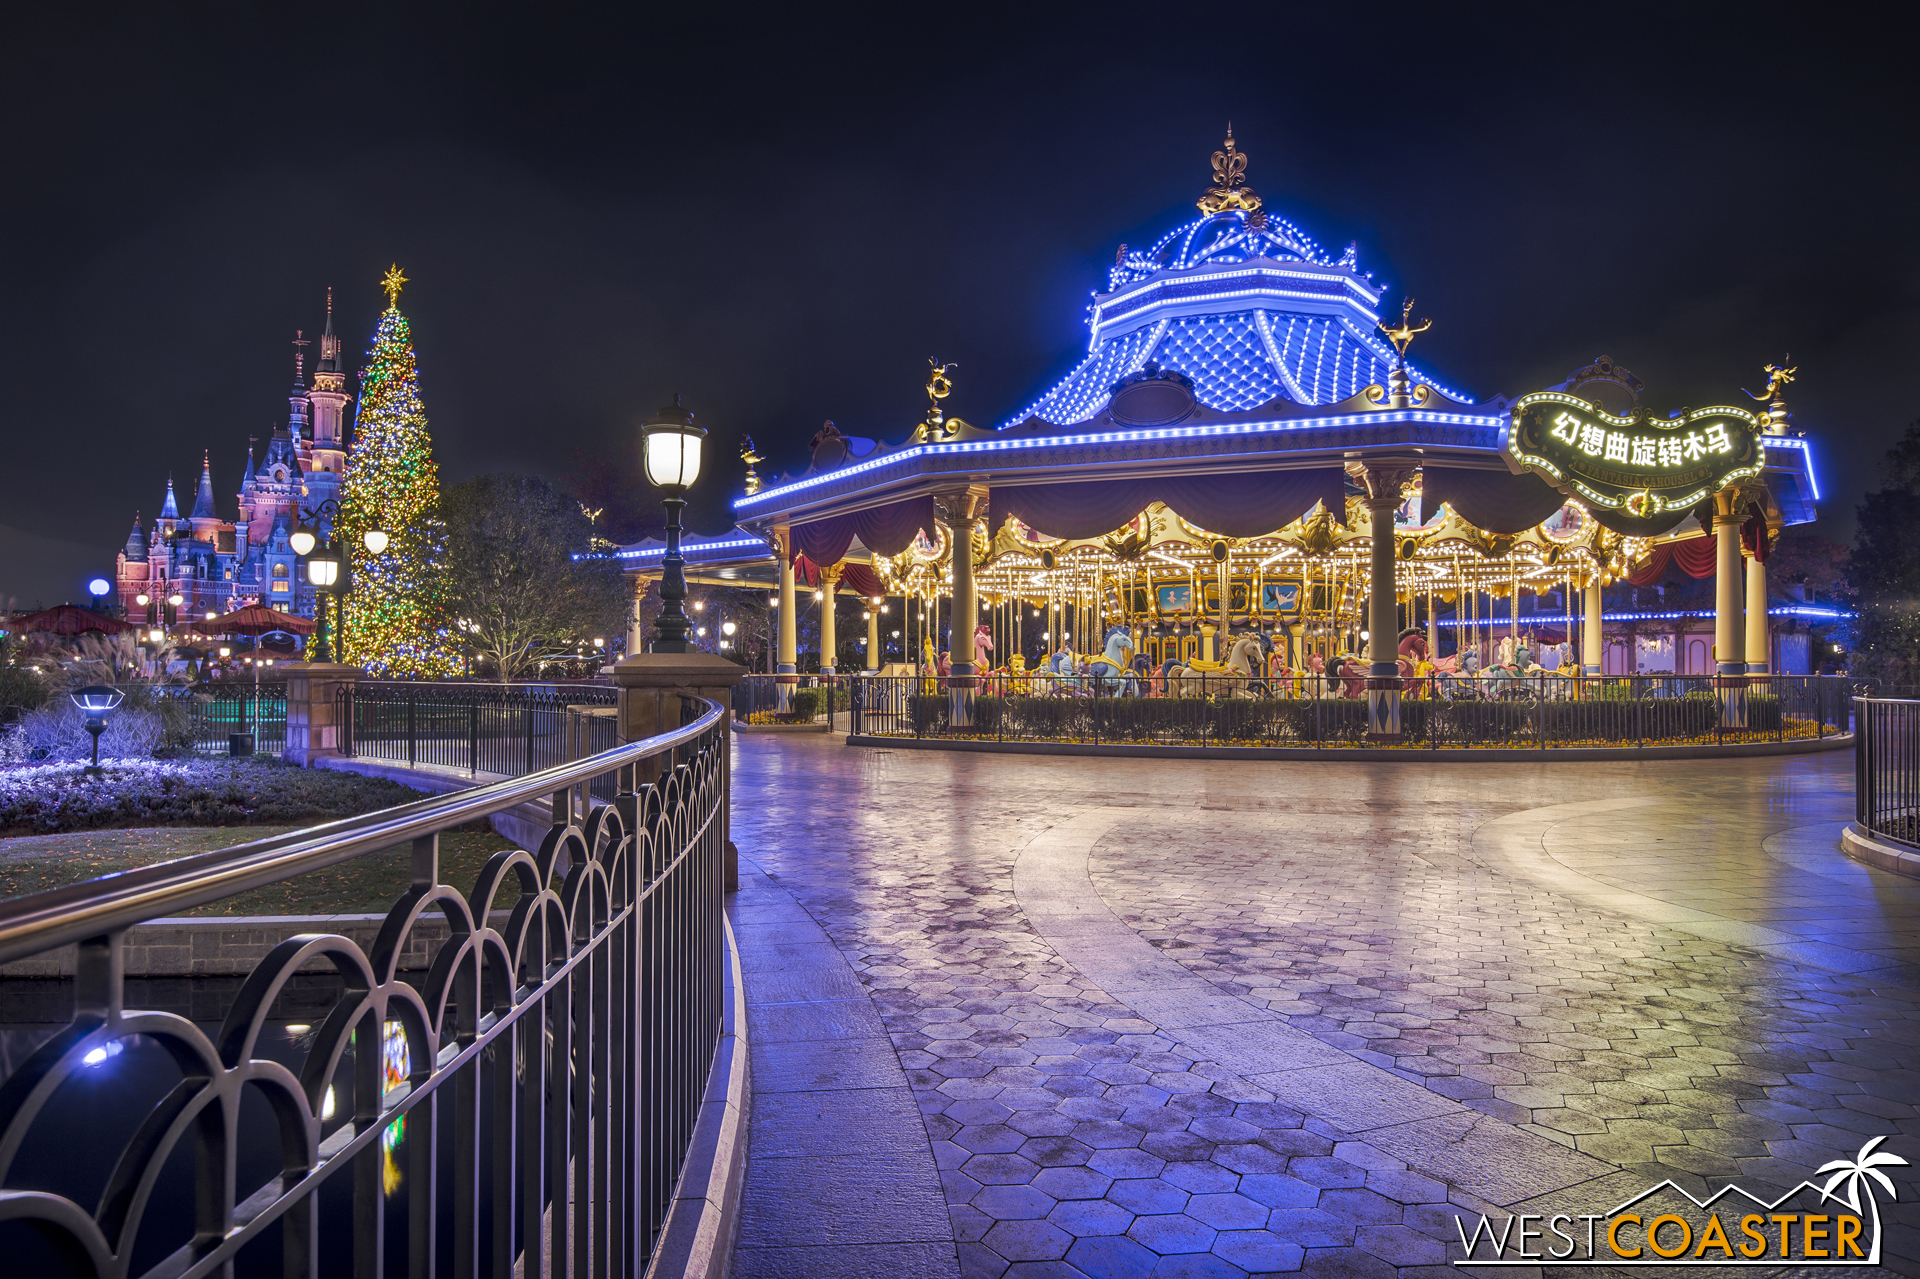 This merry-go-round is dazzling by night.